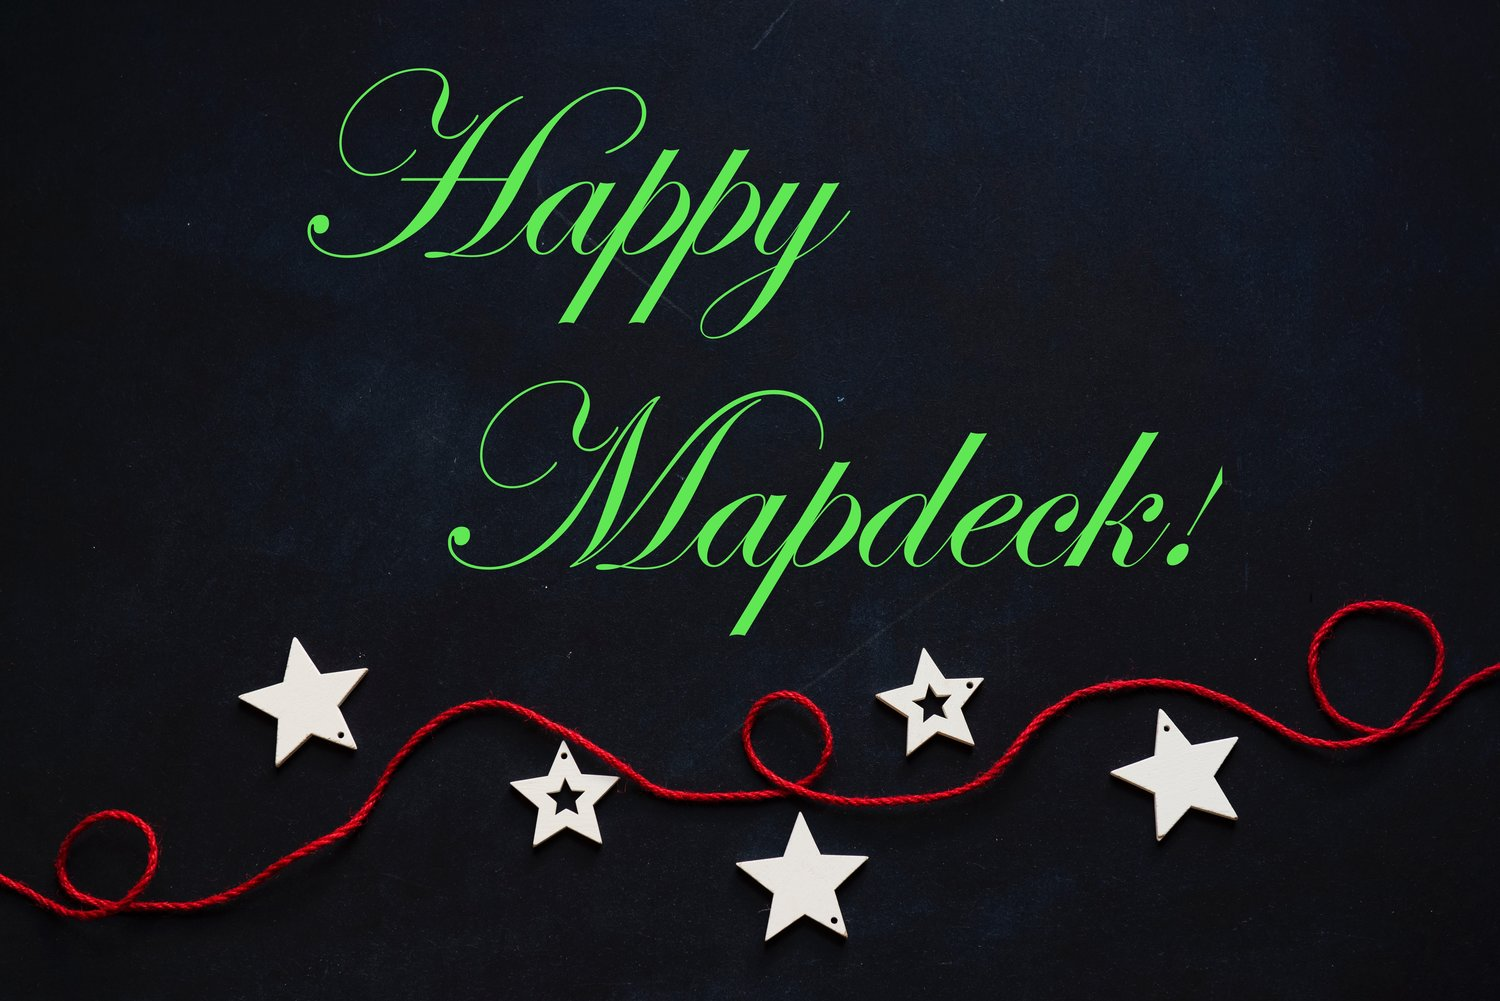 Happy Mapdeck! | Symbolix - Making your data work harder